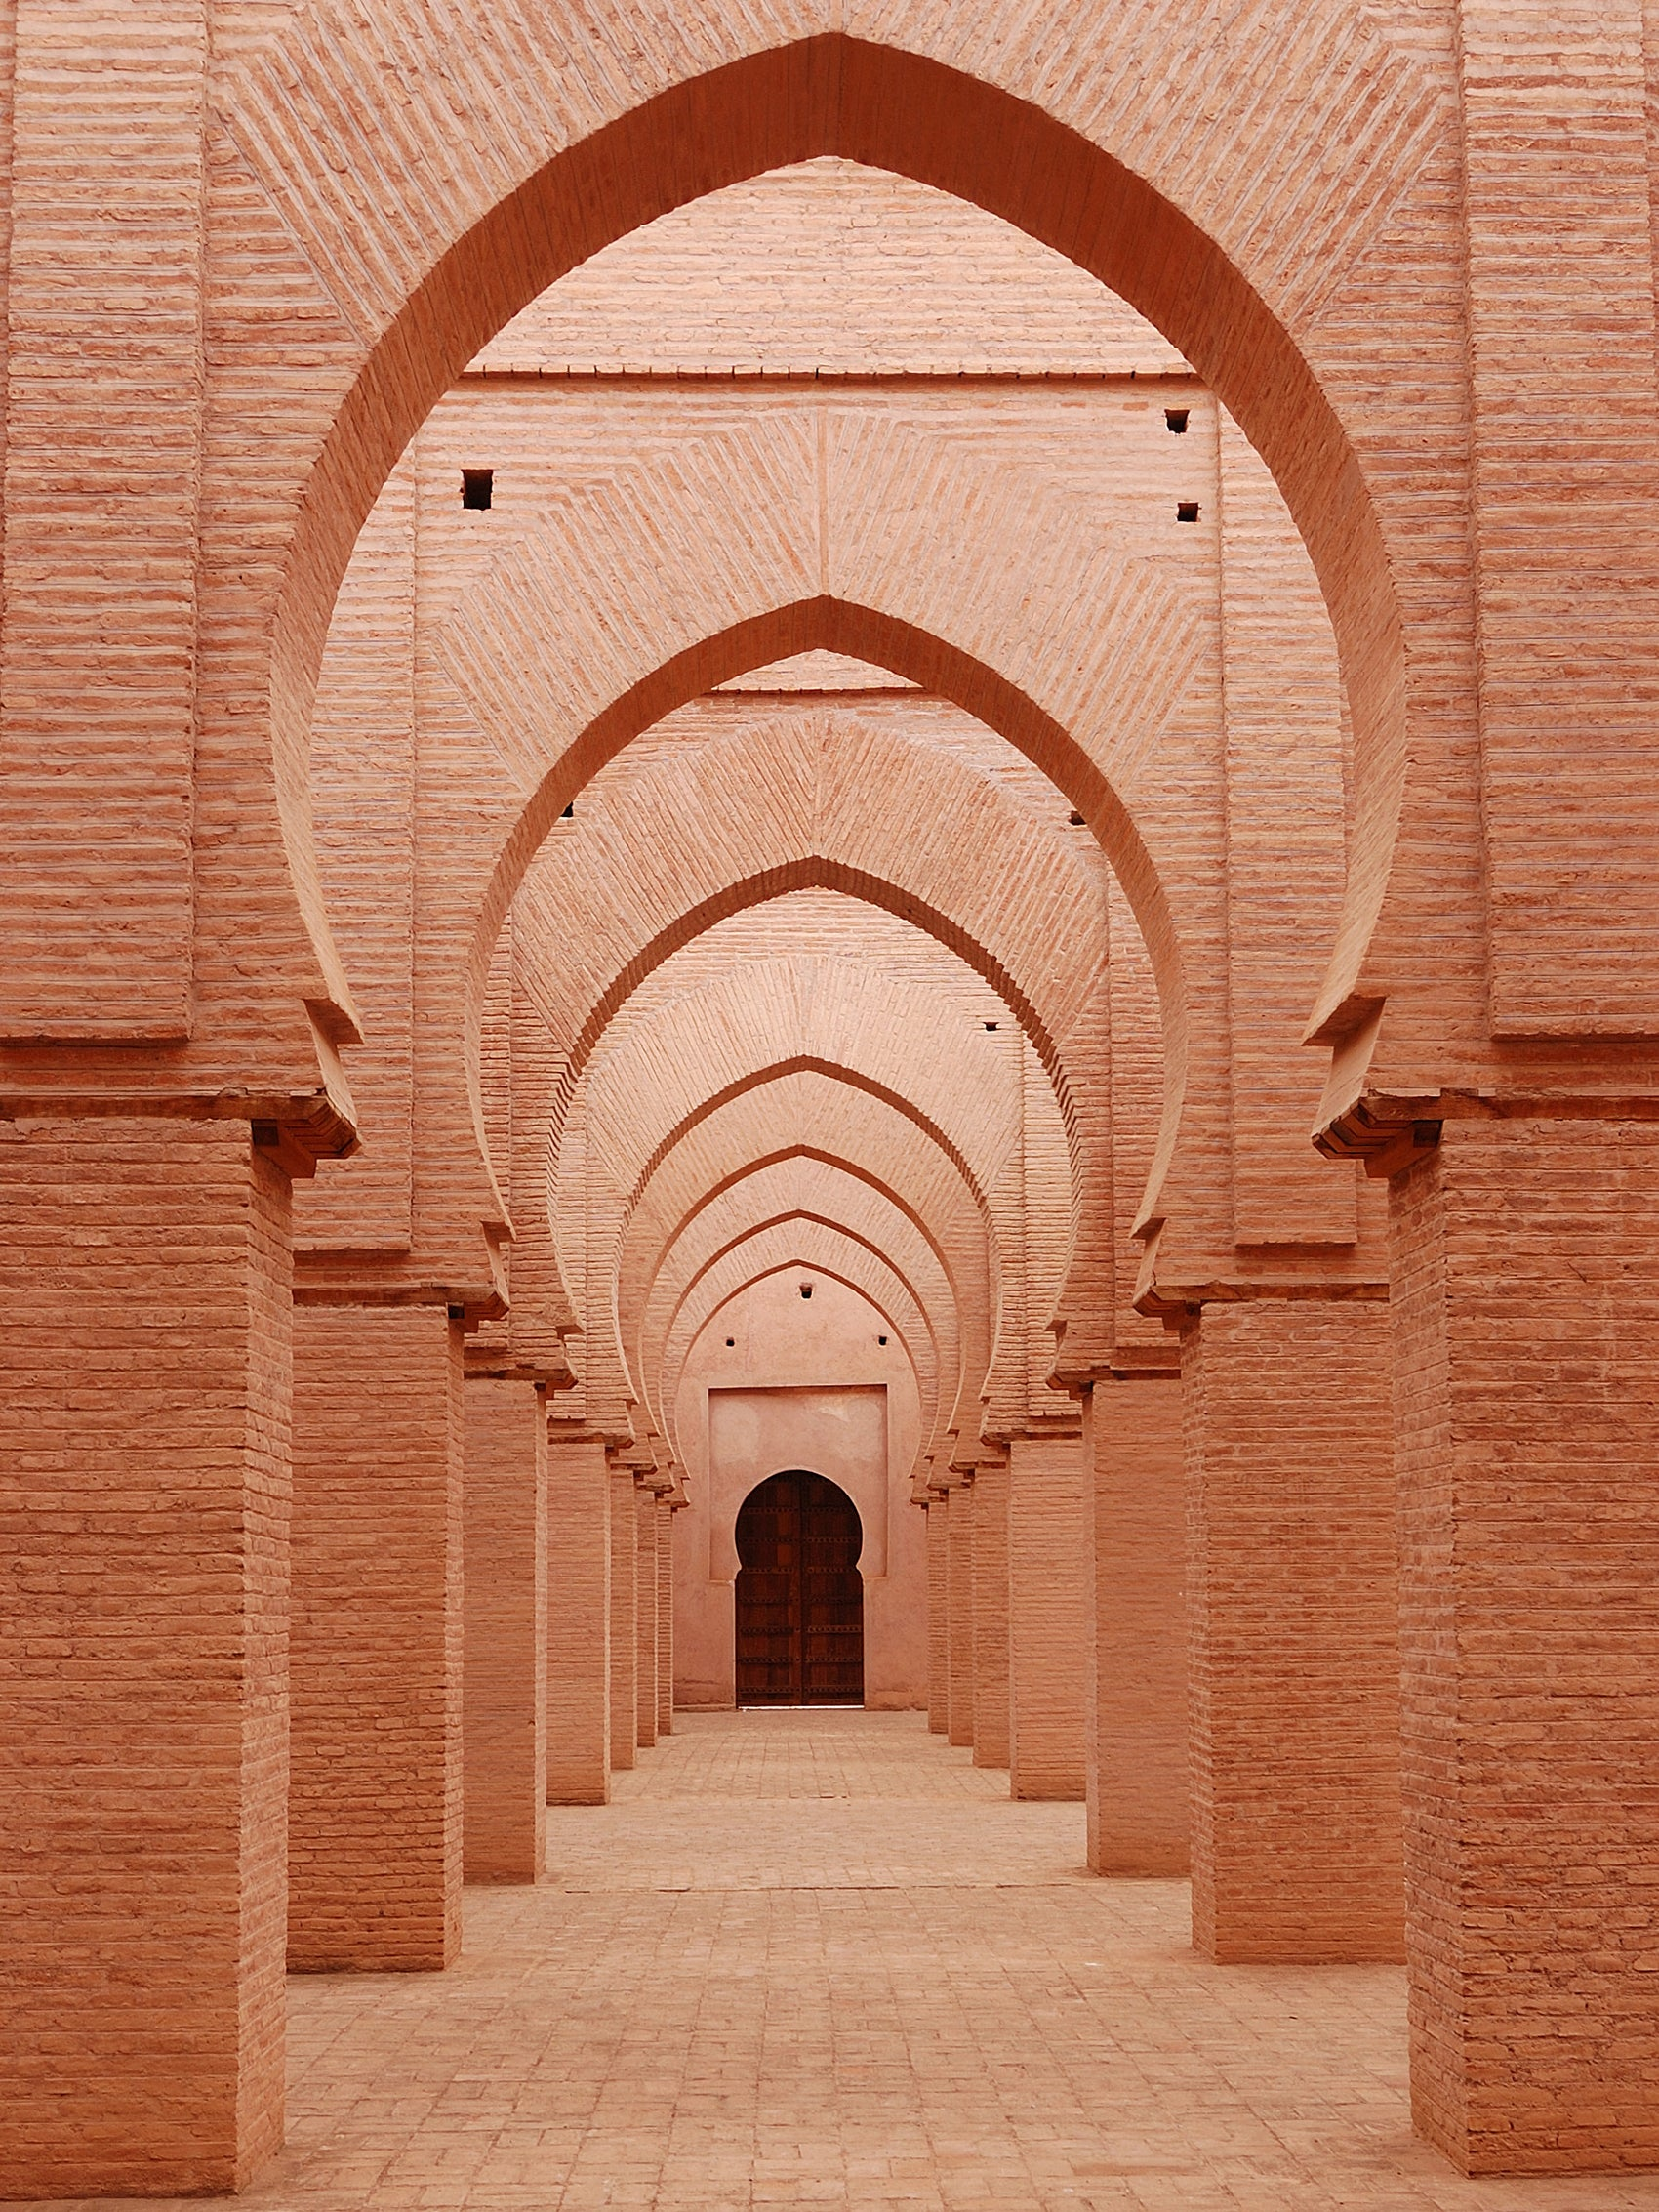 Safari Journal / Blog by Safari Fusion | Archways | Beautiful brickwork archways of the Tin Mal Mosque, Al Haouz [High Atlas Mountains] Morocco